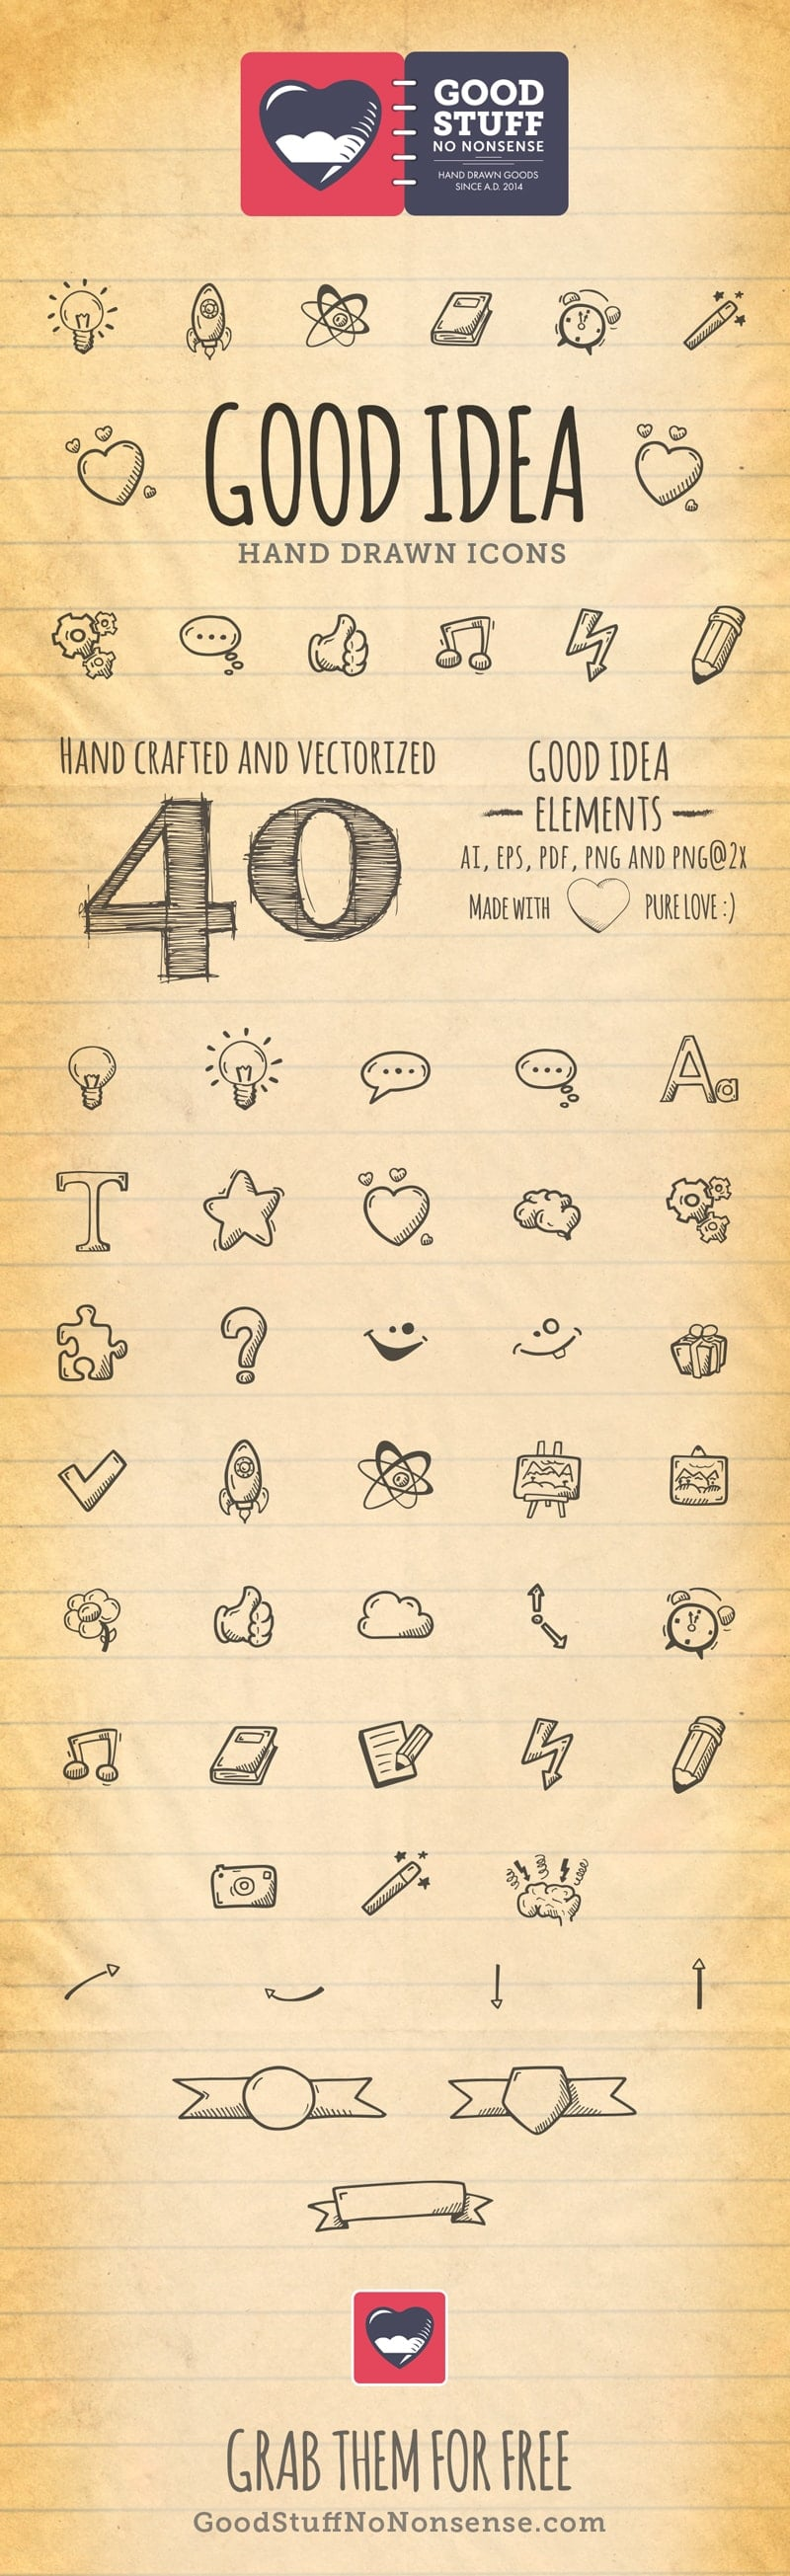 Free Good Idea Icons - Hand Drawn Icons